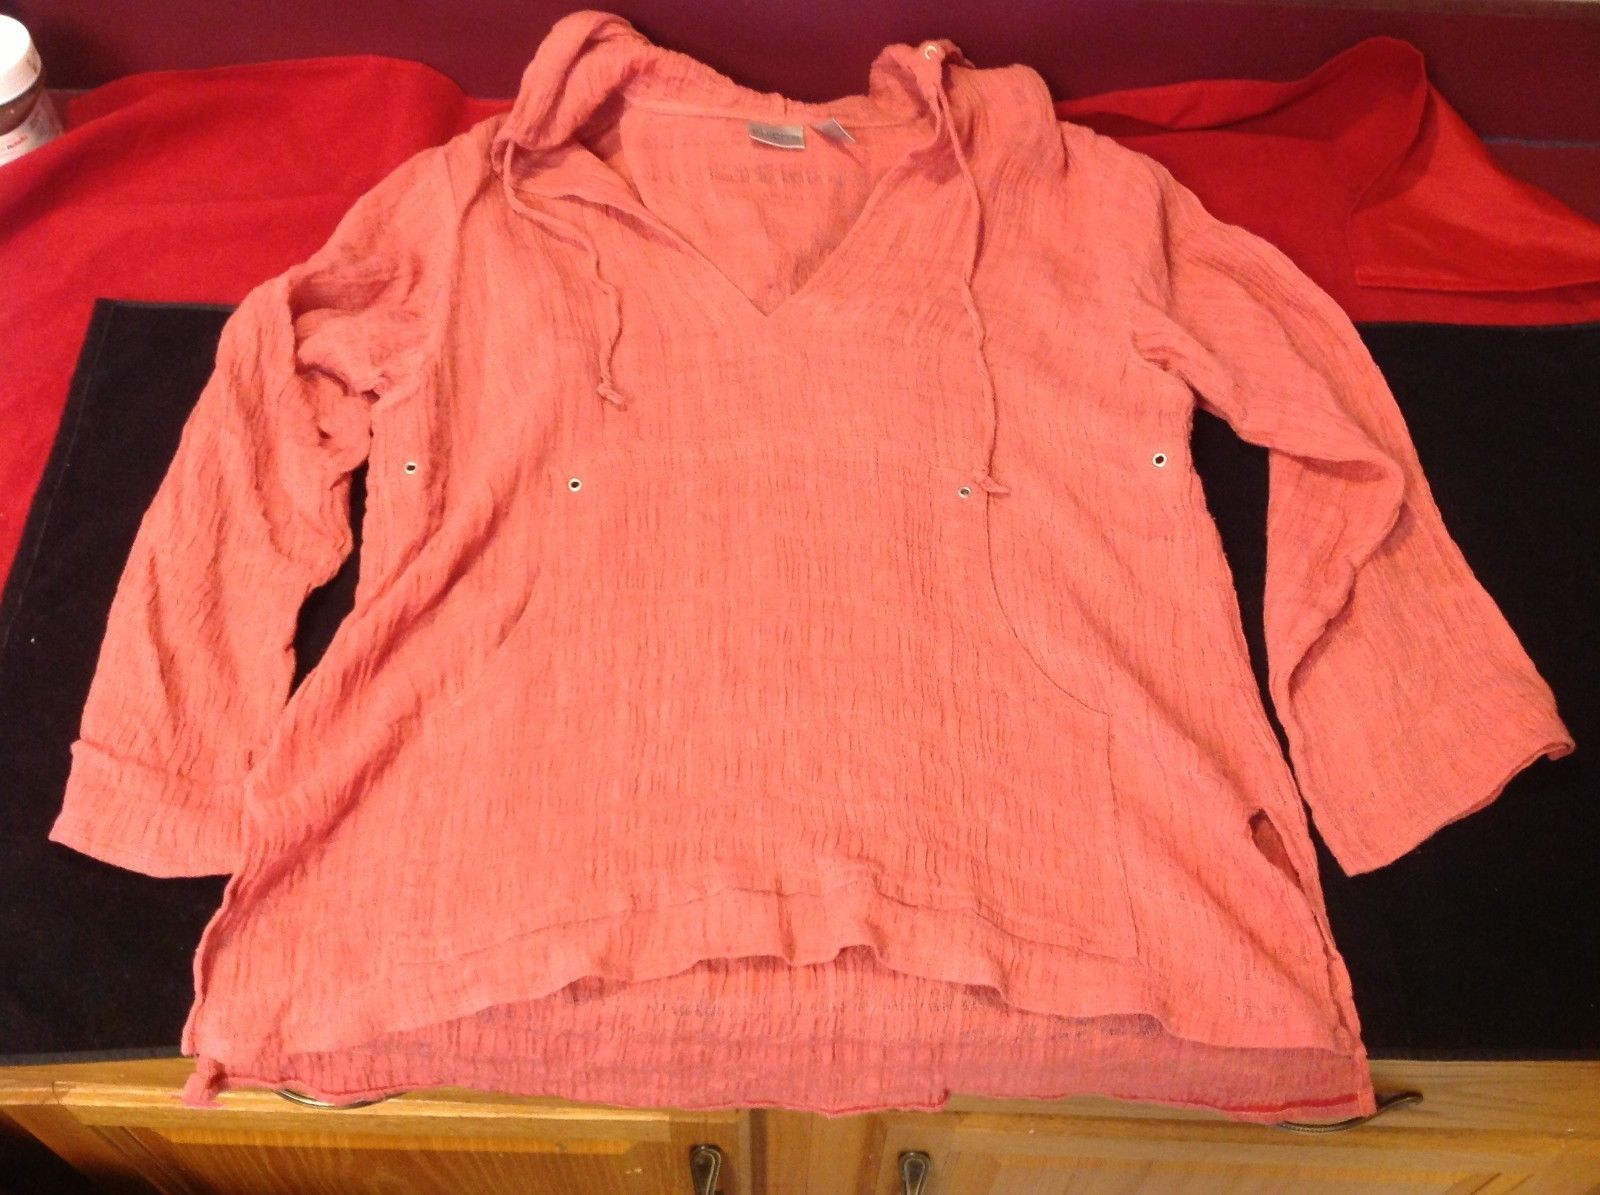 chicos woven blouse peach color size 2 for woman